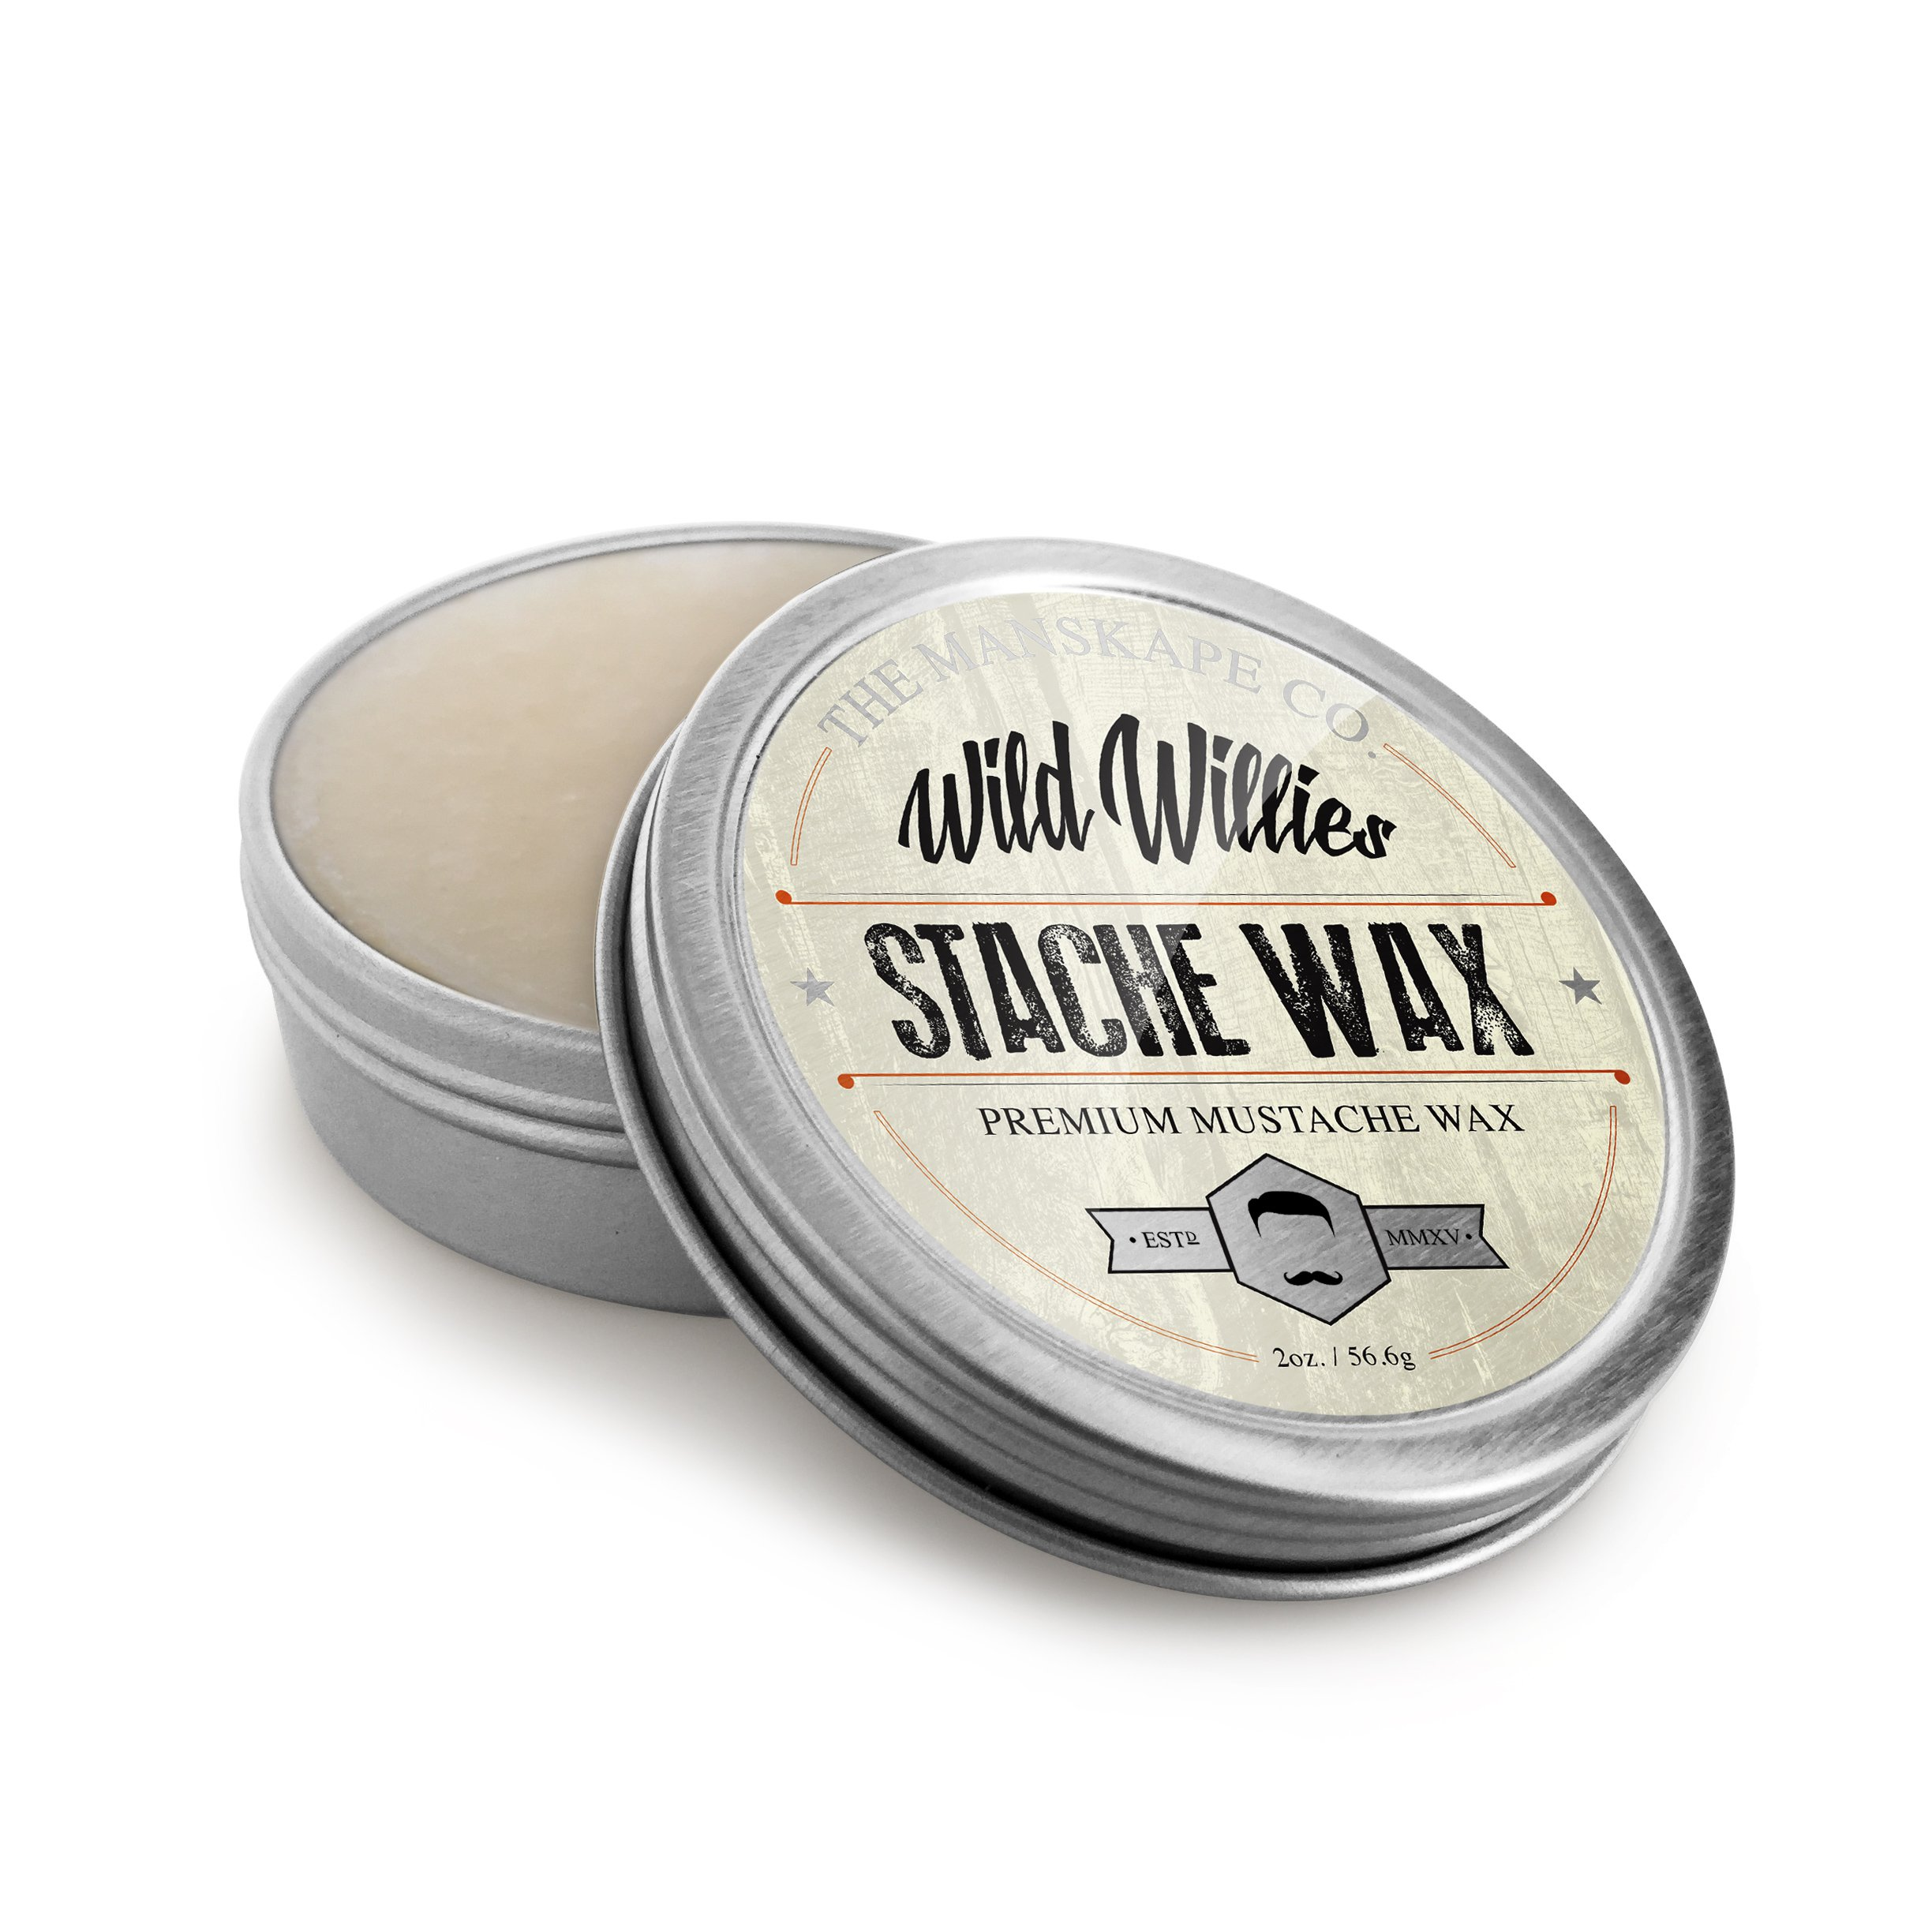 Wild Willie's All Natural Mustache and Beard Grooming Wax For Men - The Only Hard Wax with 7 Organic Ingredients for All Day Strong Hold While Treating Your Mustache at the Same Time. 2 oz.